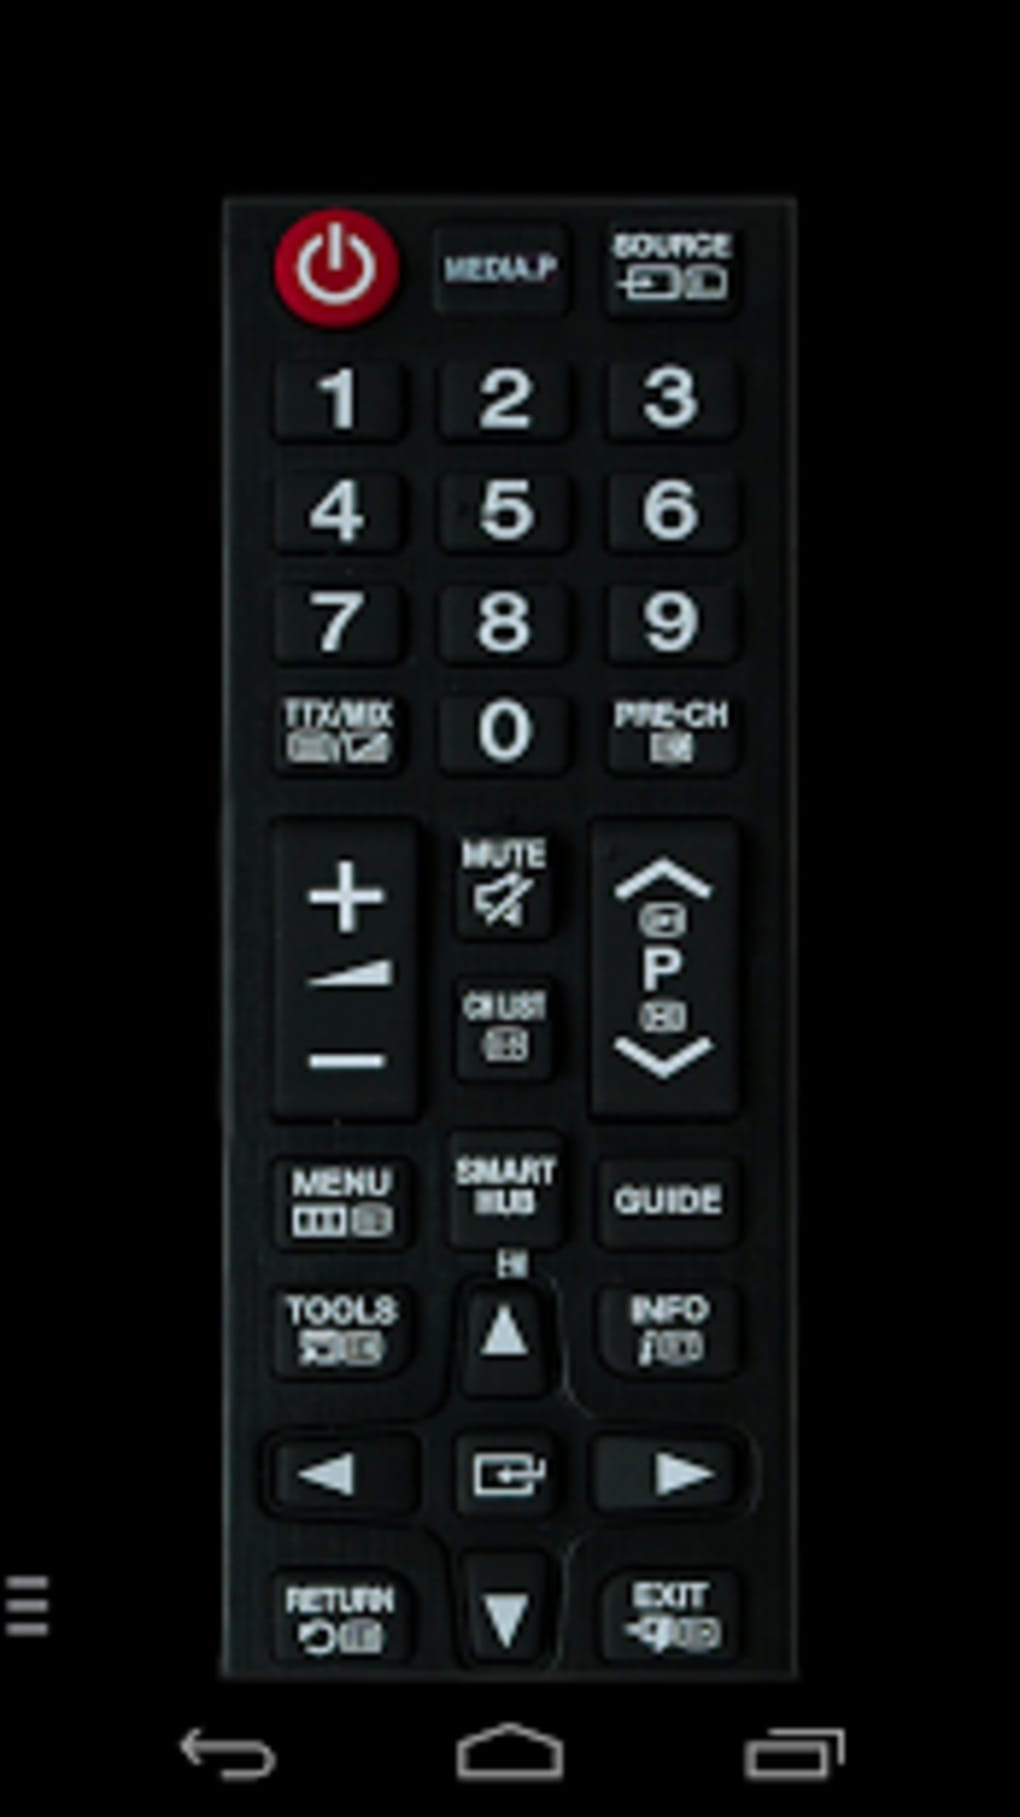 tv samsung remote control for android download. Black Bedroom Furniture Sets. Home Design Ideas